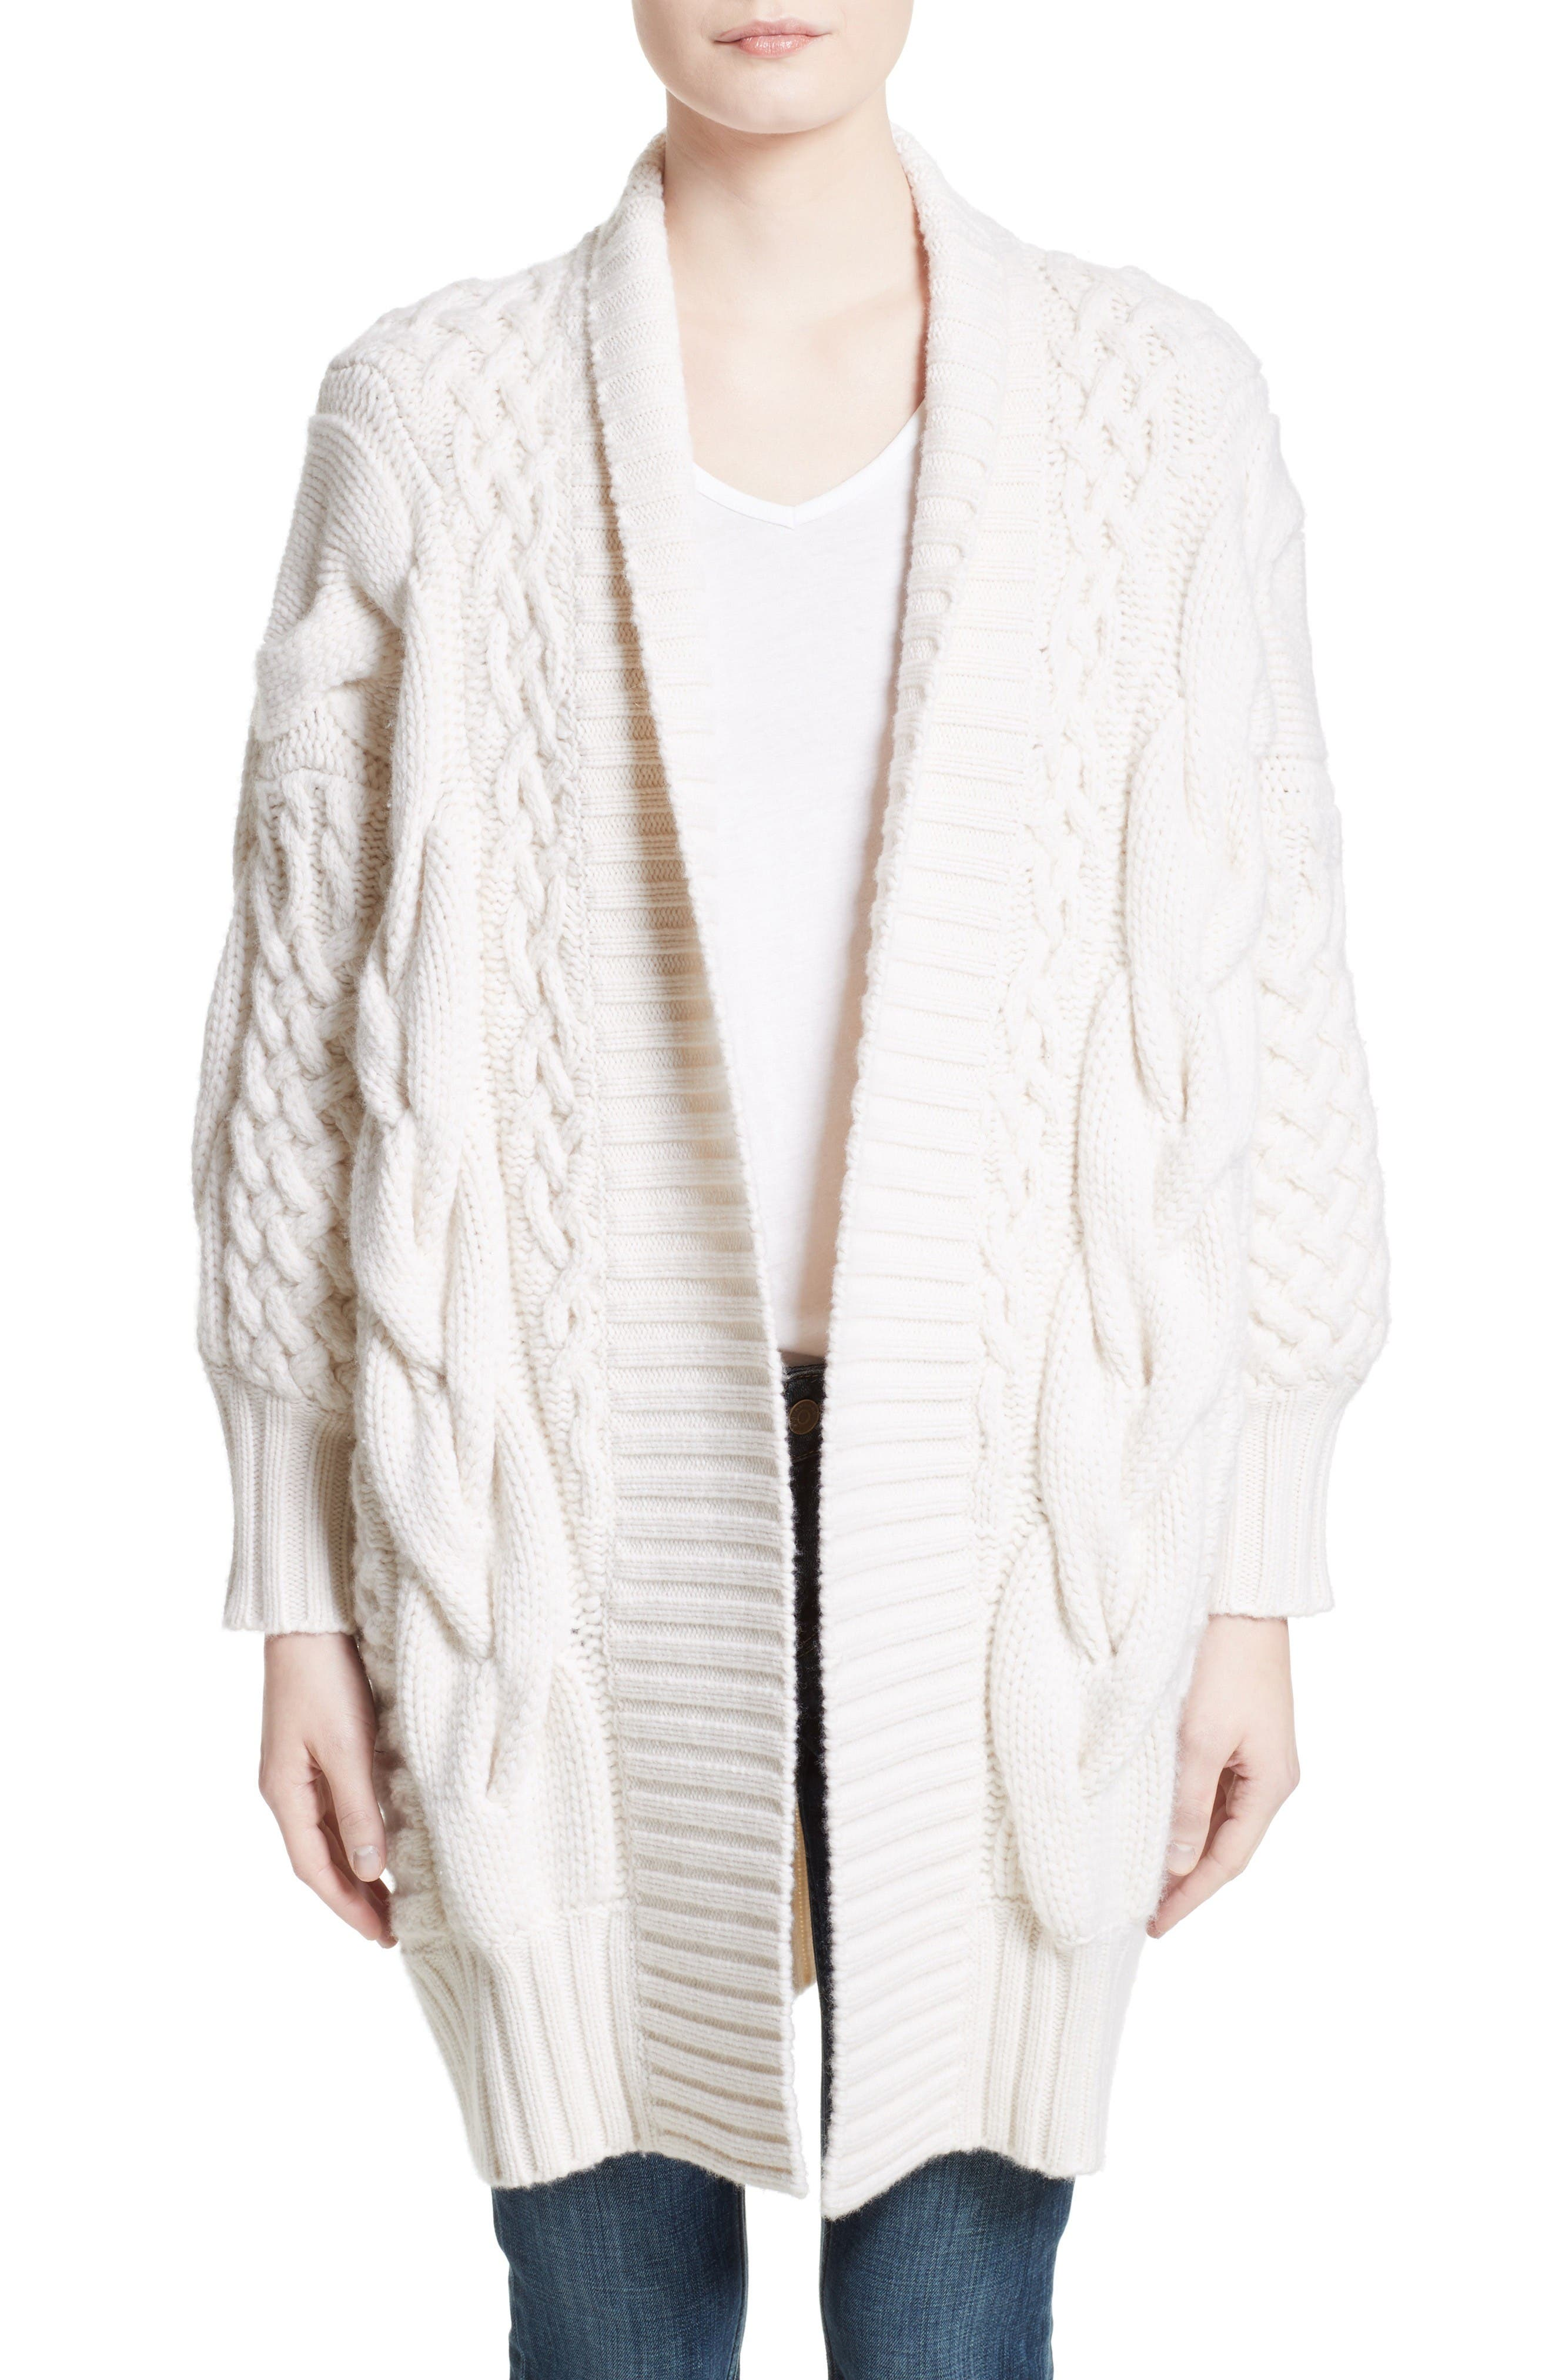 Alternate Image 1 Selected - Burberry Camrosbrook Wool & Cashmere Open Cardigan